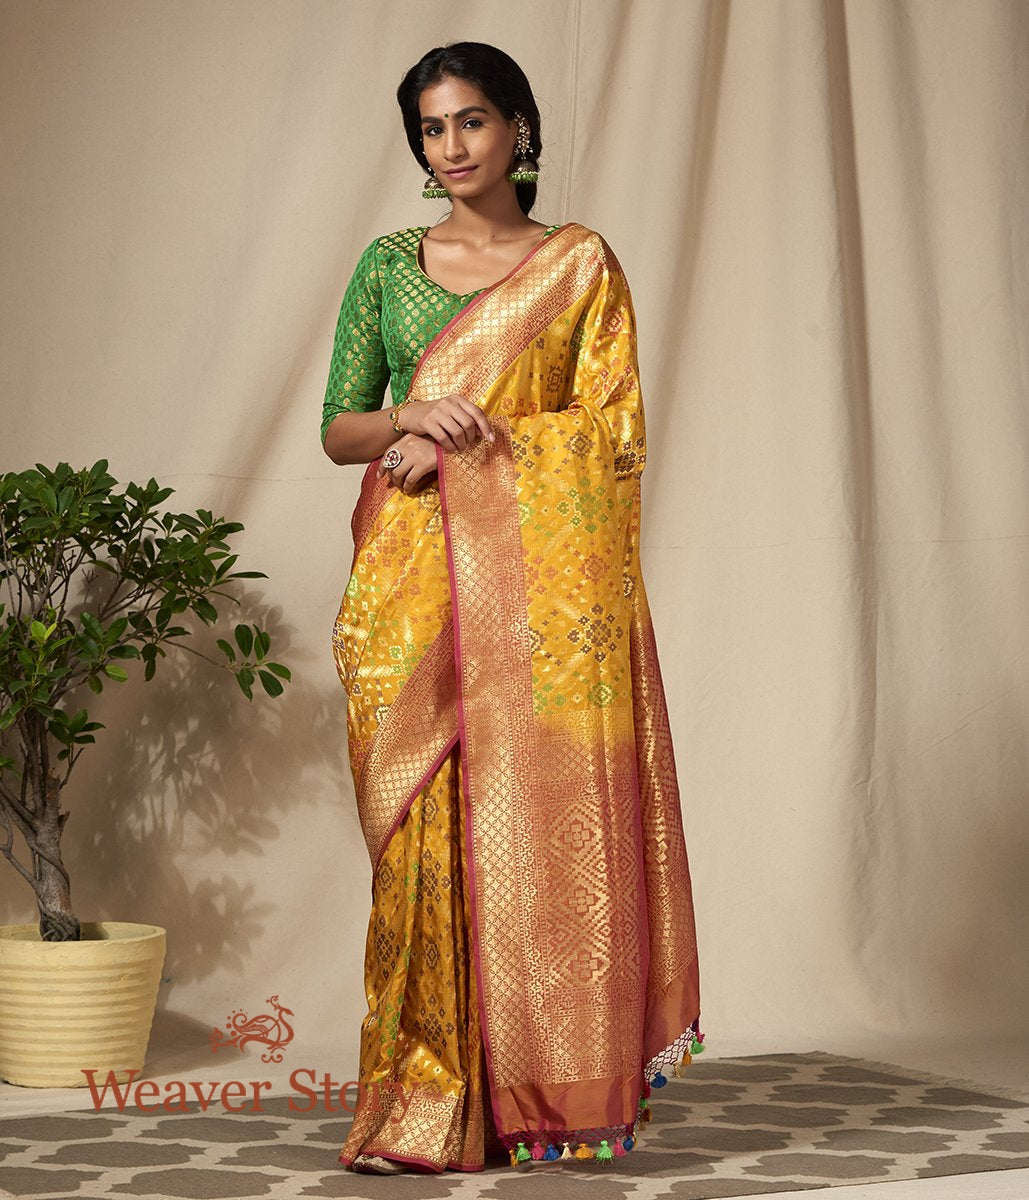 Handwoven Mustard Meenakari Banarasi Patola Saree with Peach Border